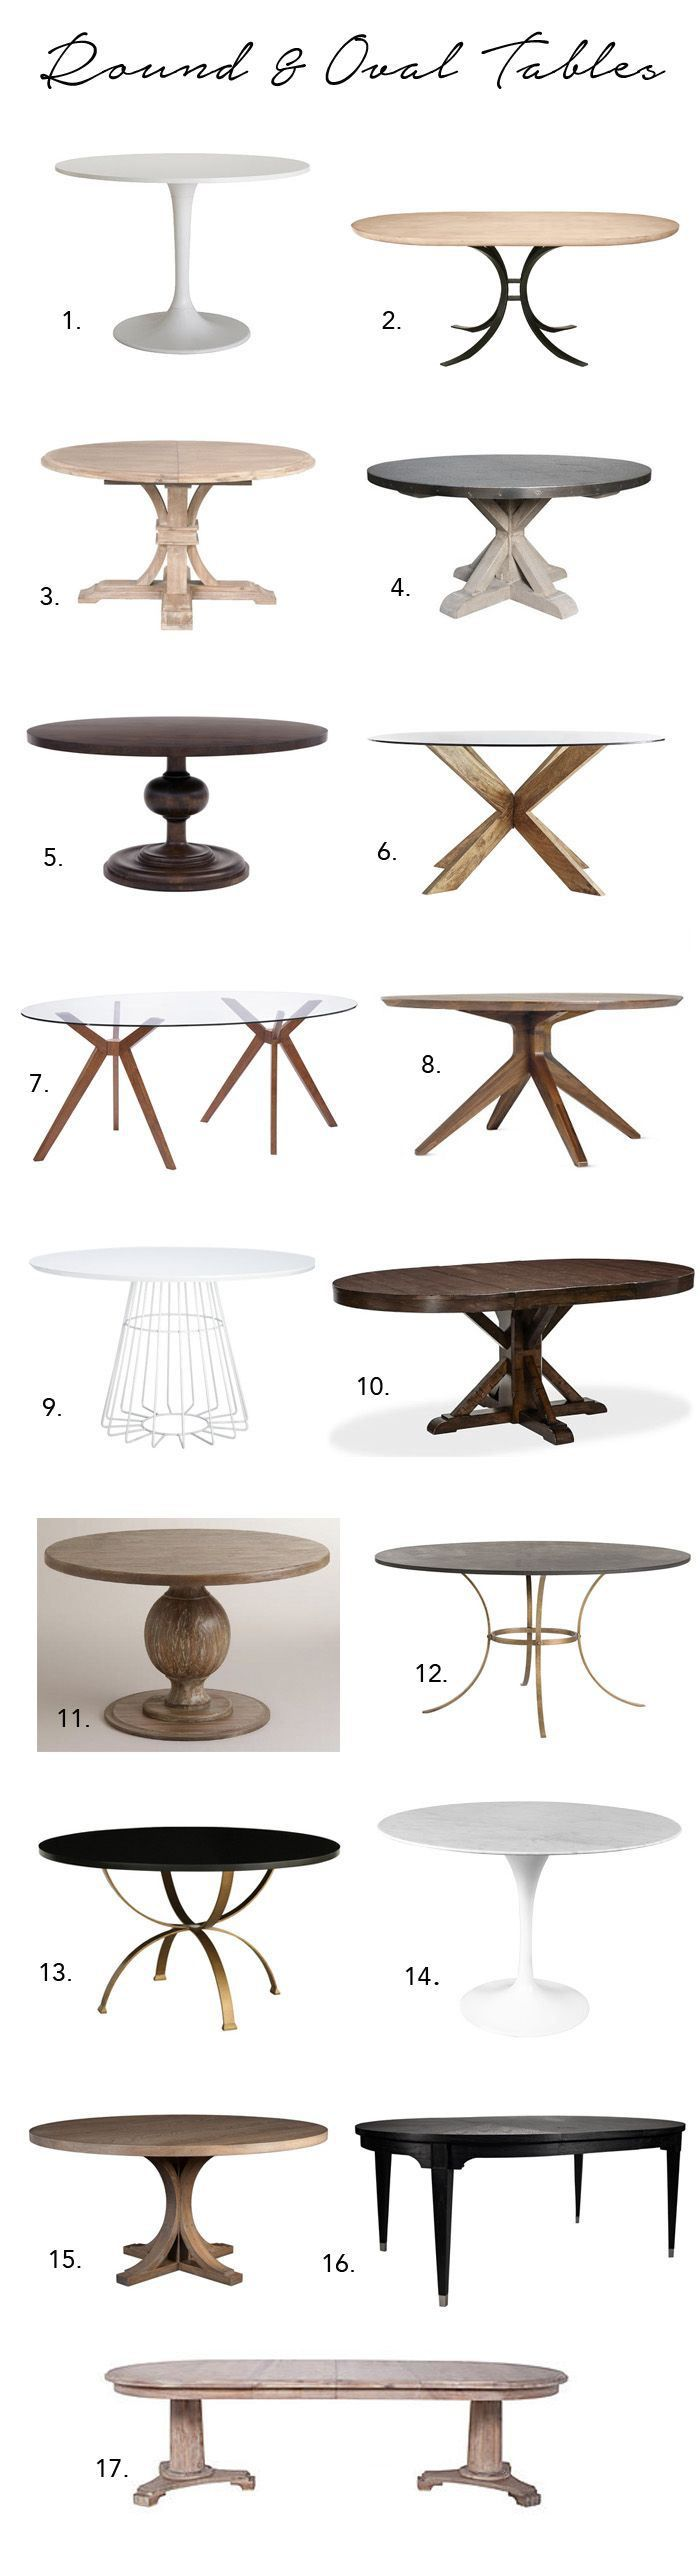 This table Round Up was compiled and created by Erin Gates of